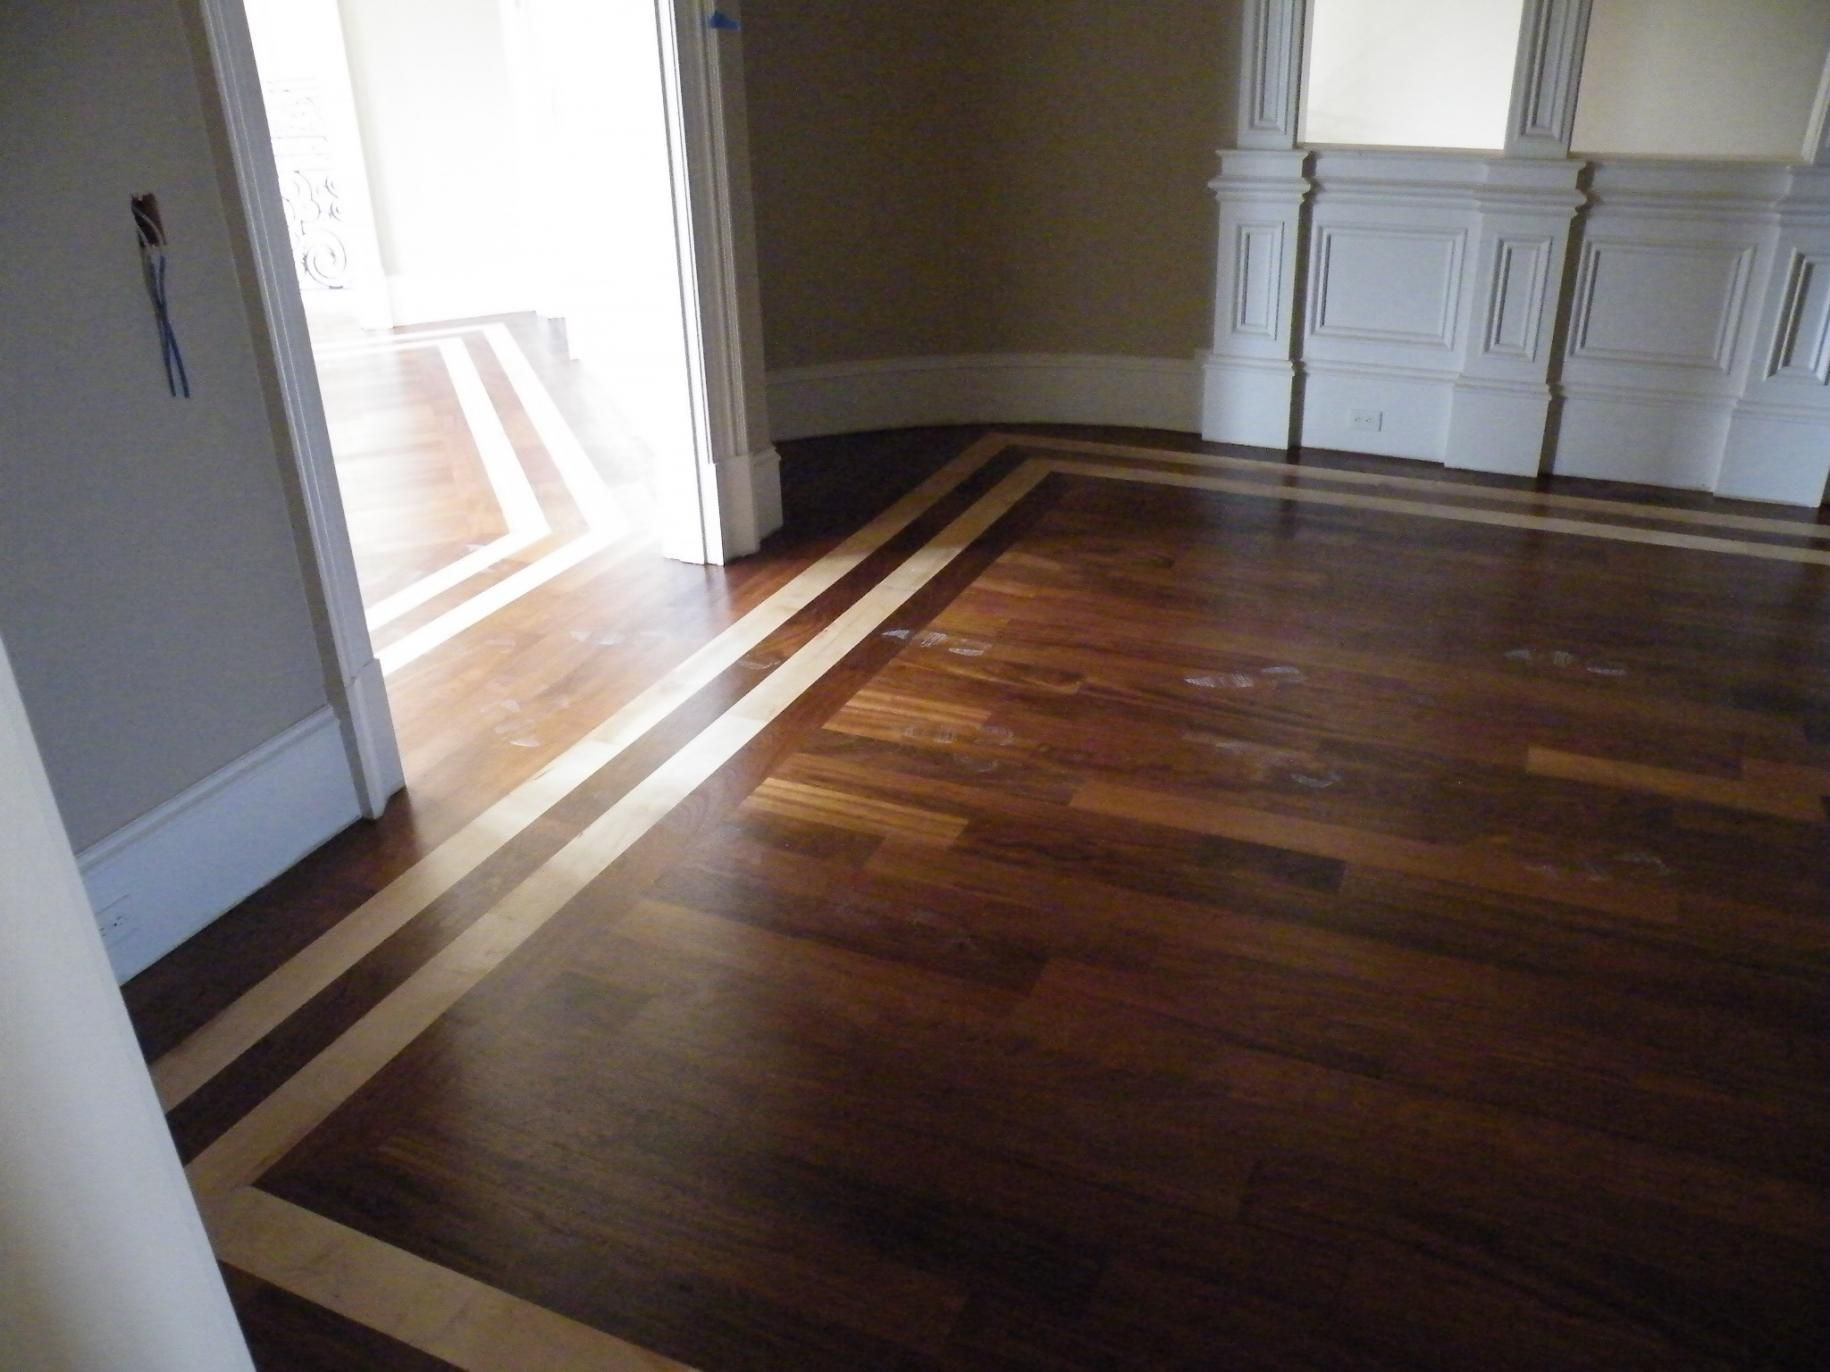 Hardwood Flooring Services Ct Of Wood Floor Borders Hardwood Floor Inlay Flooring Contractor Regarding Wood Floor Borders Hardwood Floor Inlay Flooring Contractor Talk